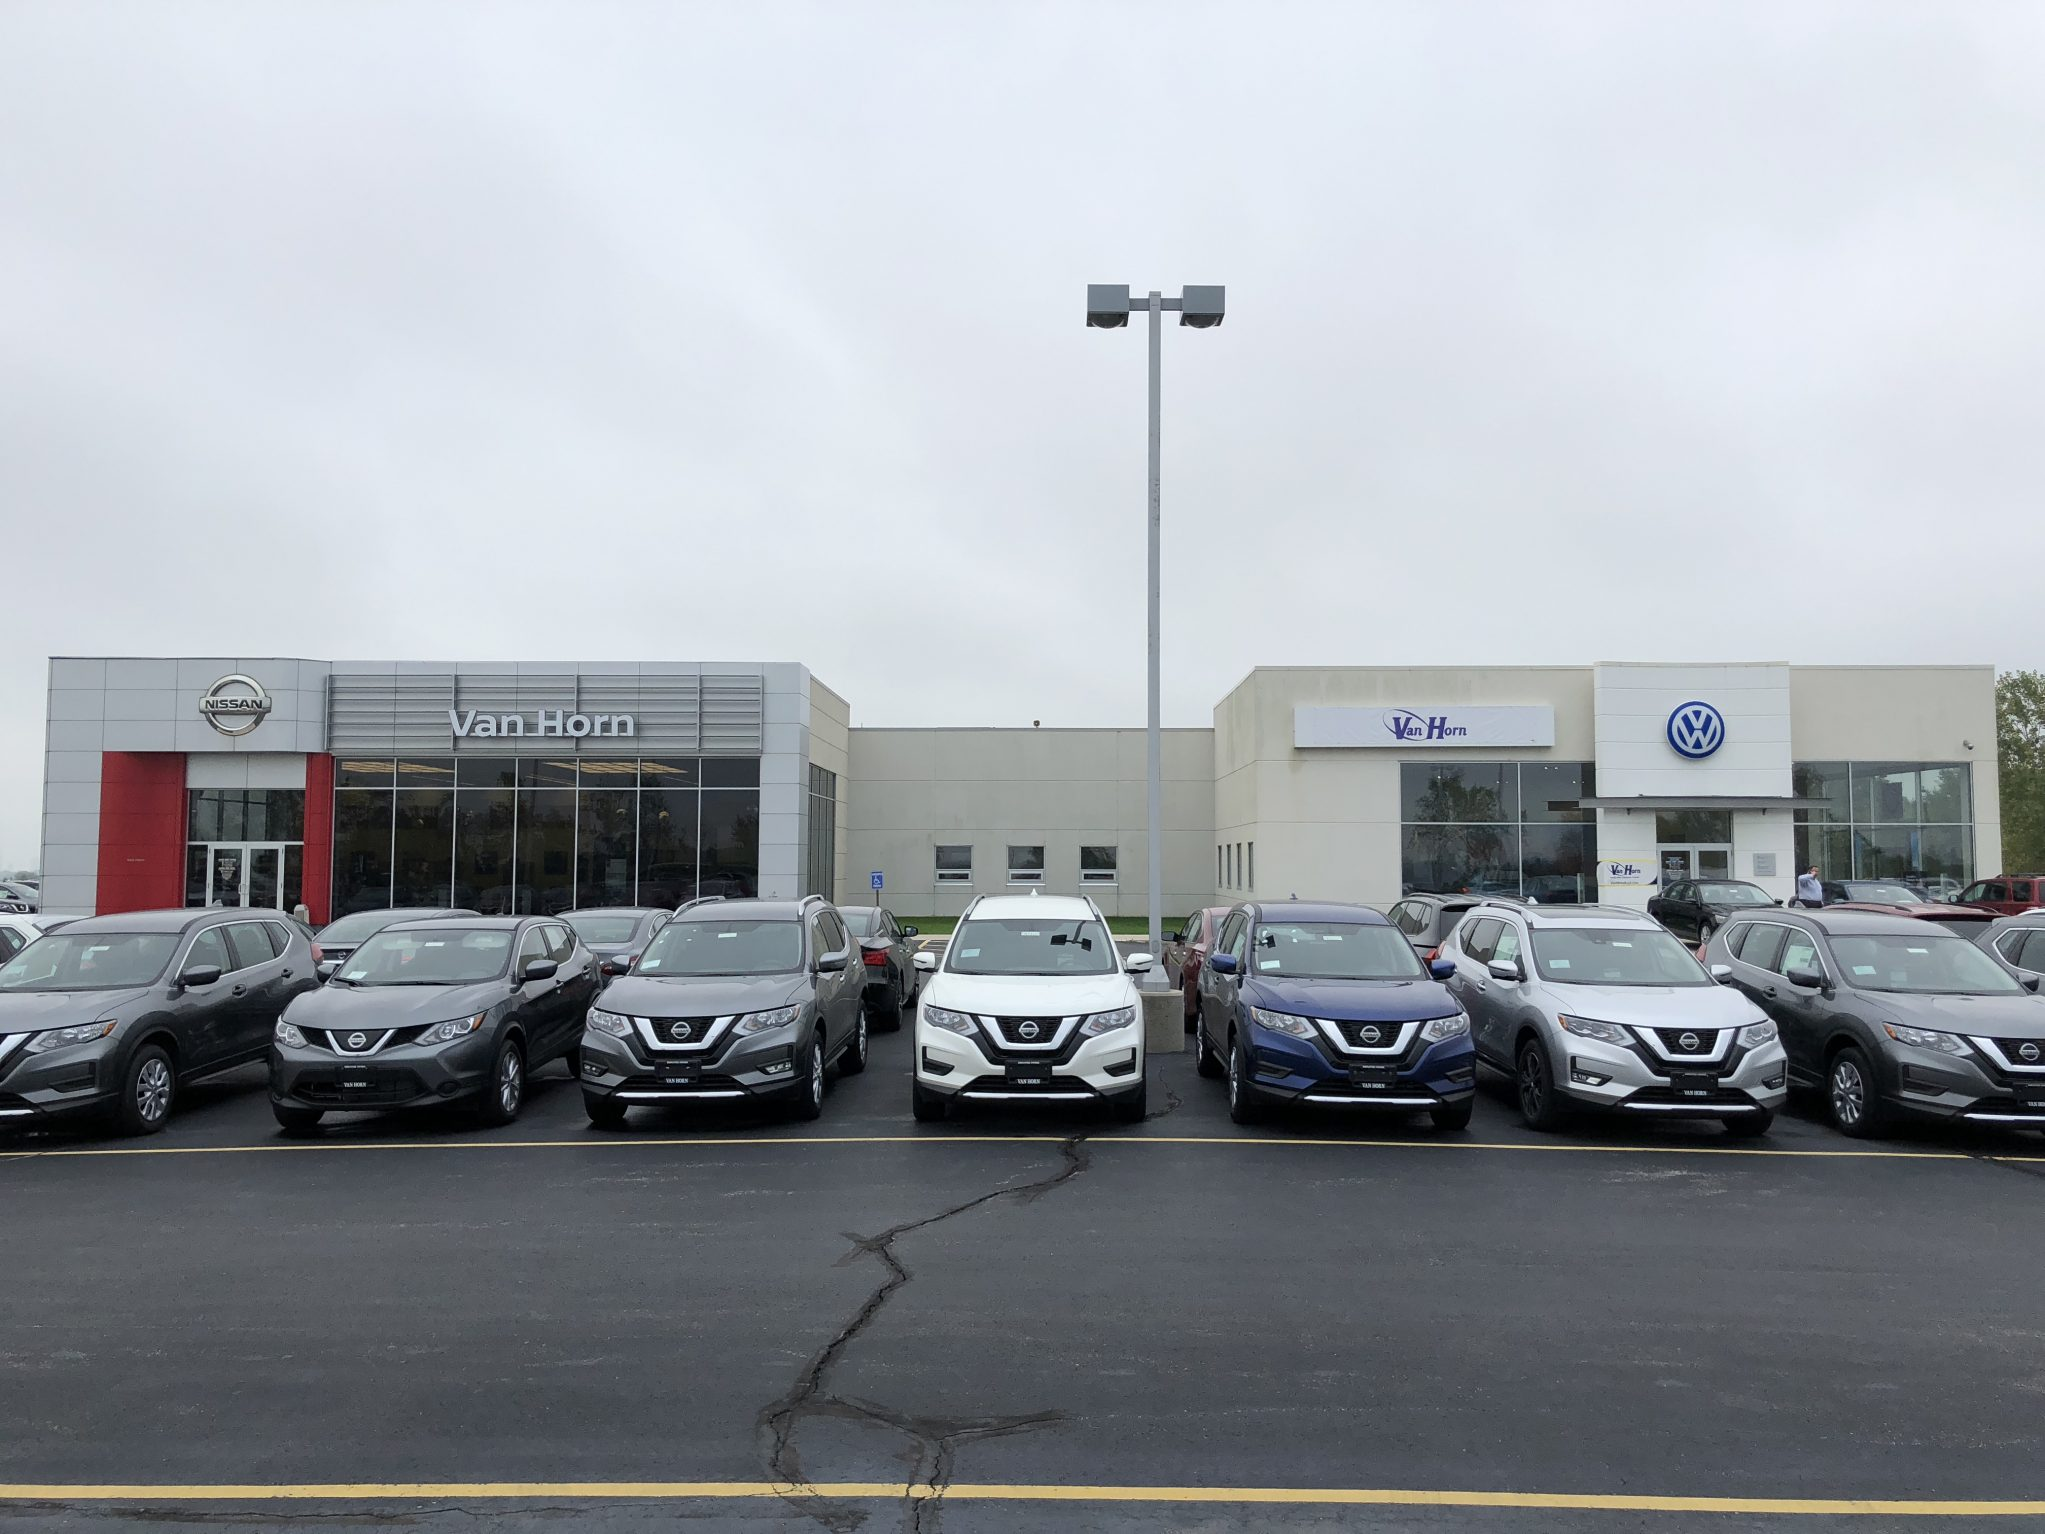 Nissan VW Sheboygan Dealership Pic